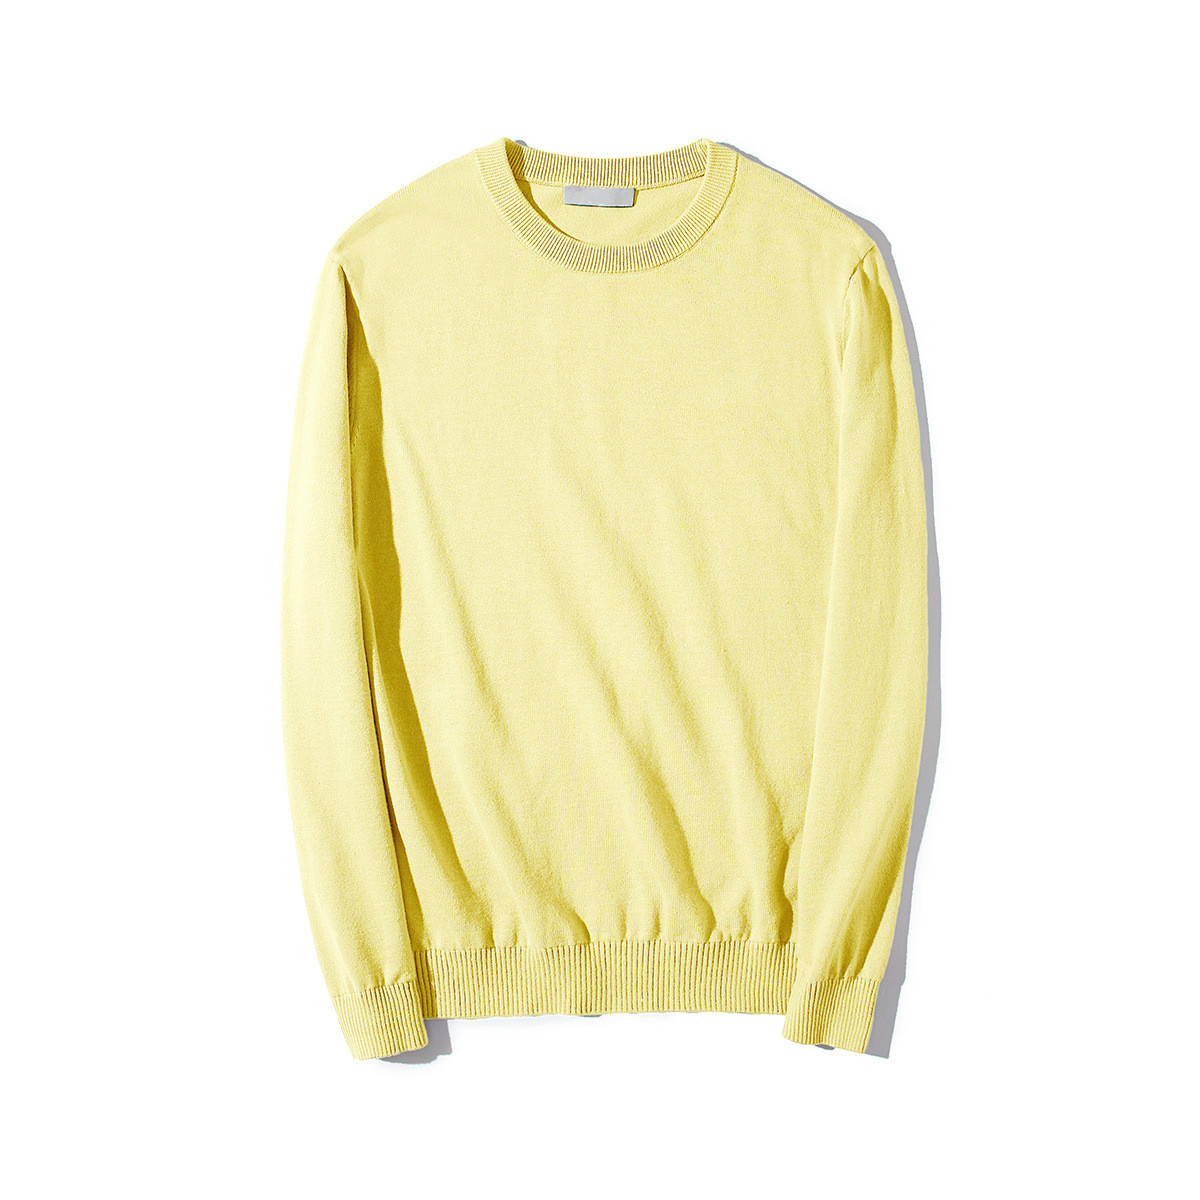 Yellow Sweater Pullover Knitwear Oversized Long-Sleeve Male Men Autumn Fashion Thin-Light